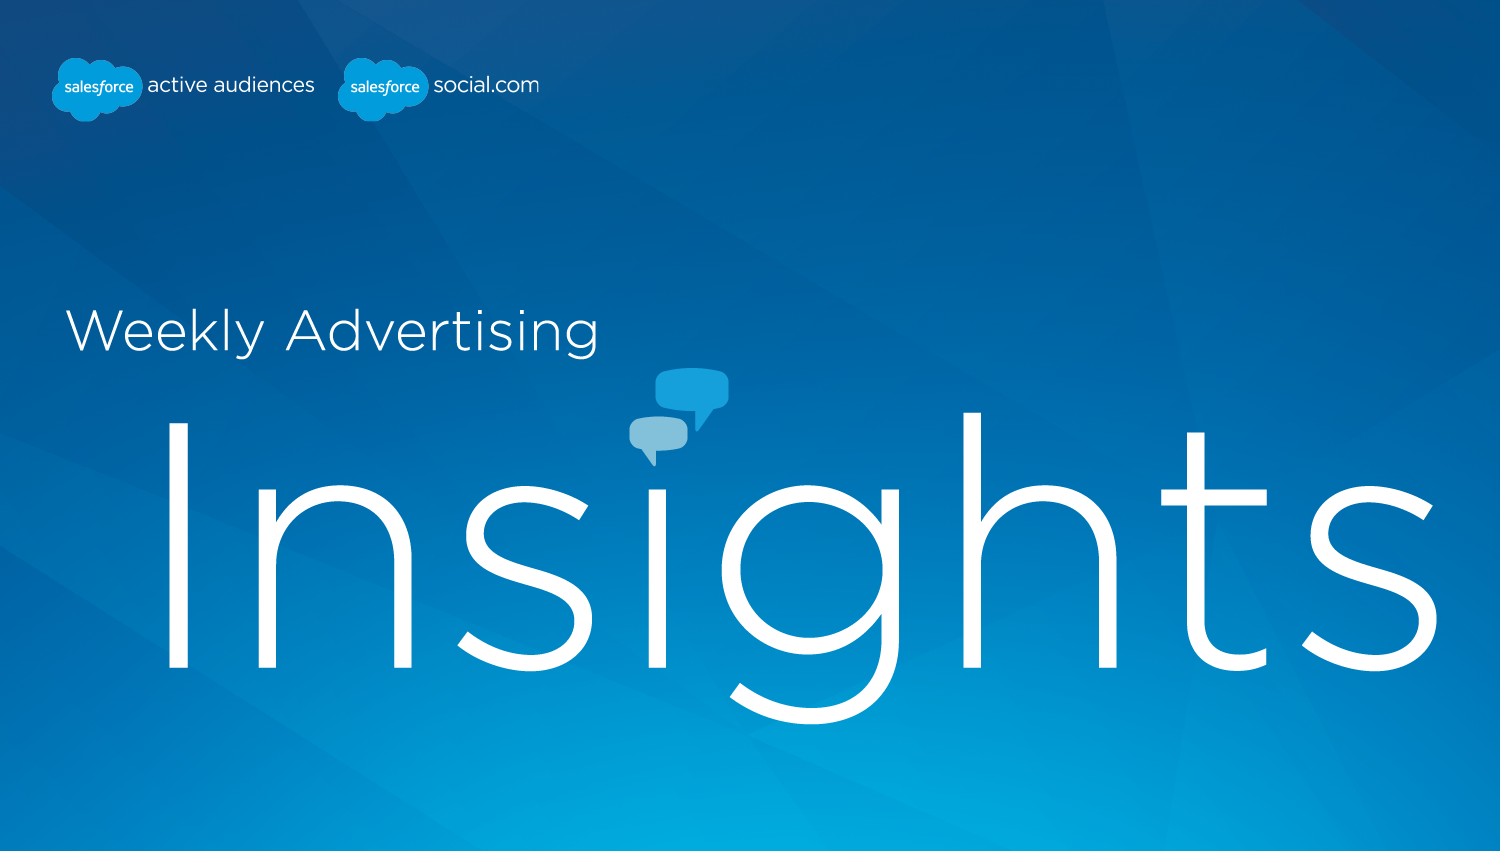 Advertising Insights: Mobile and Retail Together, eCommerce Across Devices, and Video Ads